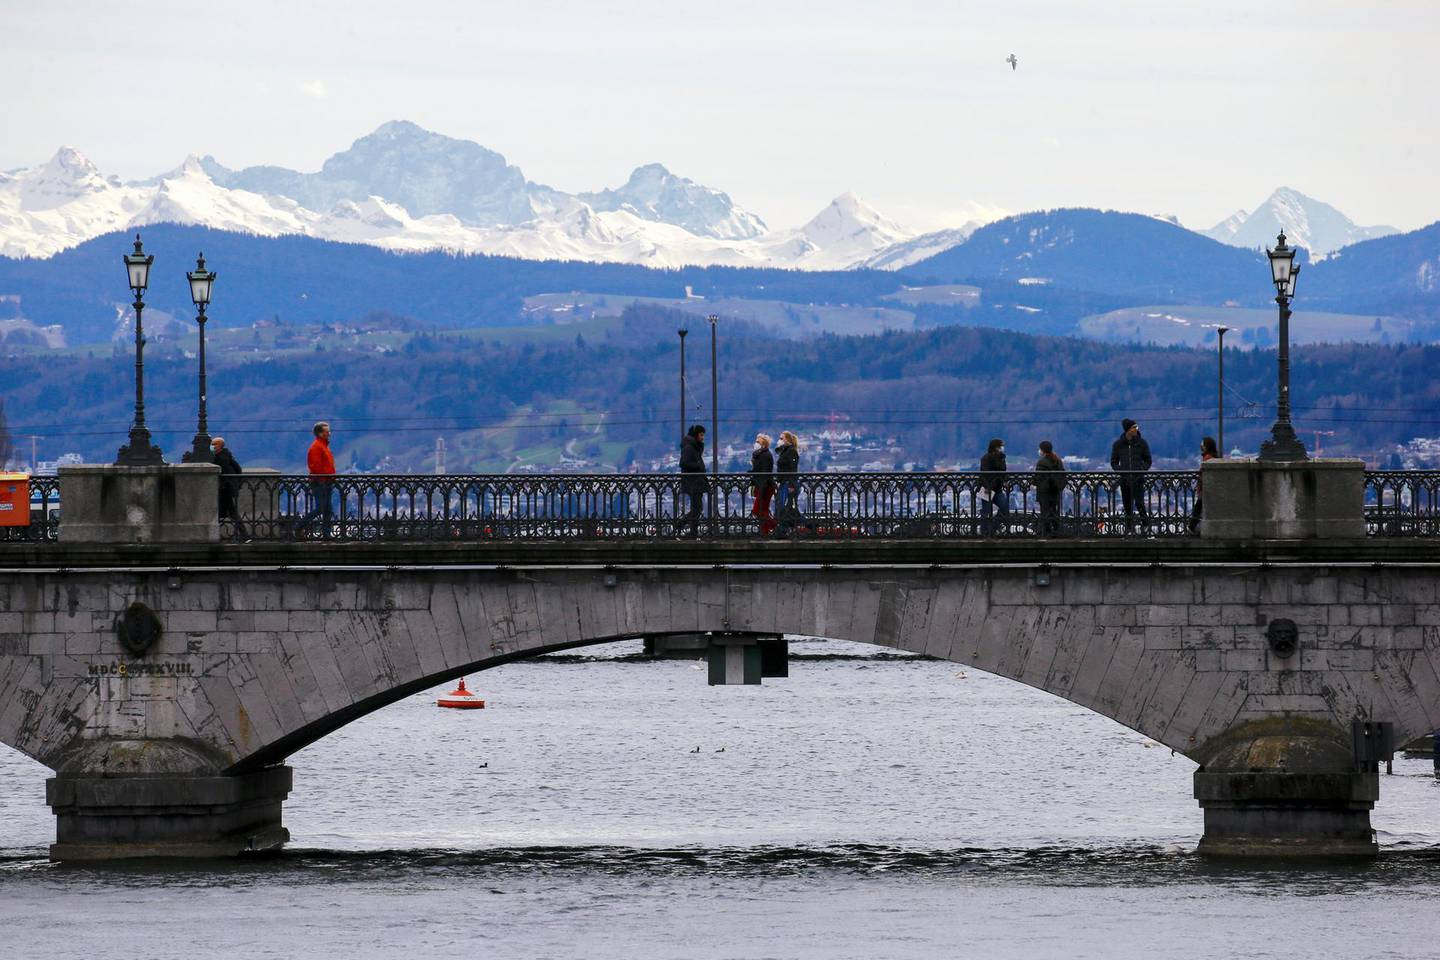 Eastern Swiss Alps are seen in the background as people cross the Limmat River on the Muensterbruecke bridge, as the spread of the coronavirus disease (COVID-19) continues, in Zurich, Switzerland March 13, 2021. REUTERS/Arnd Wiegmann